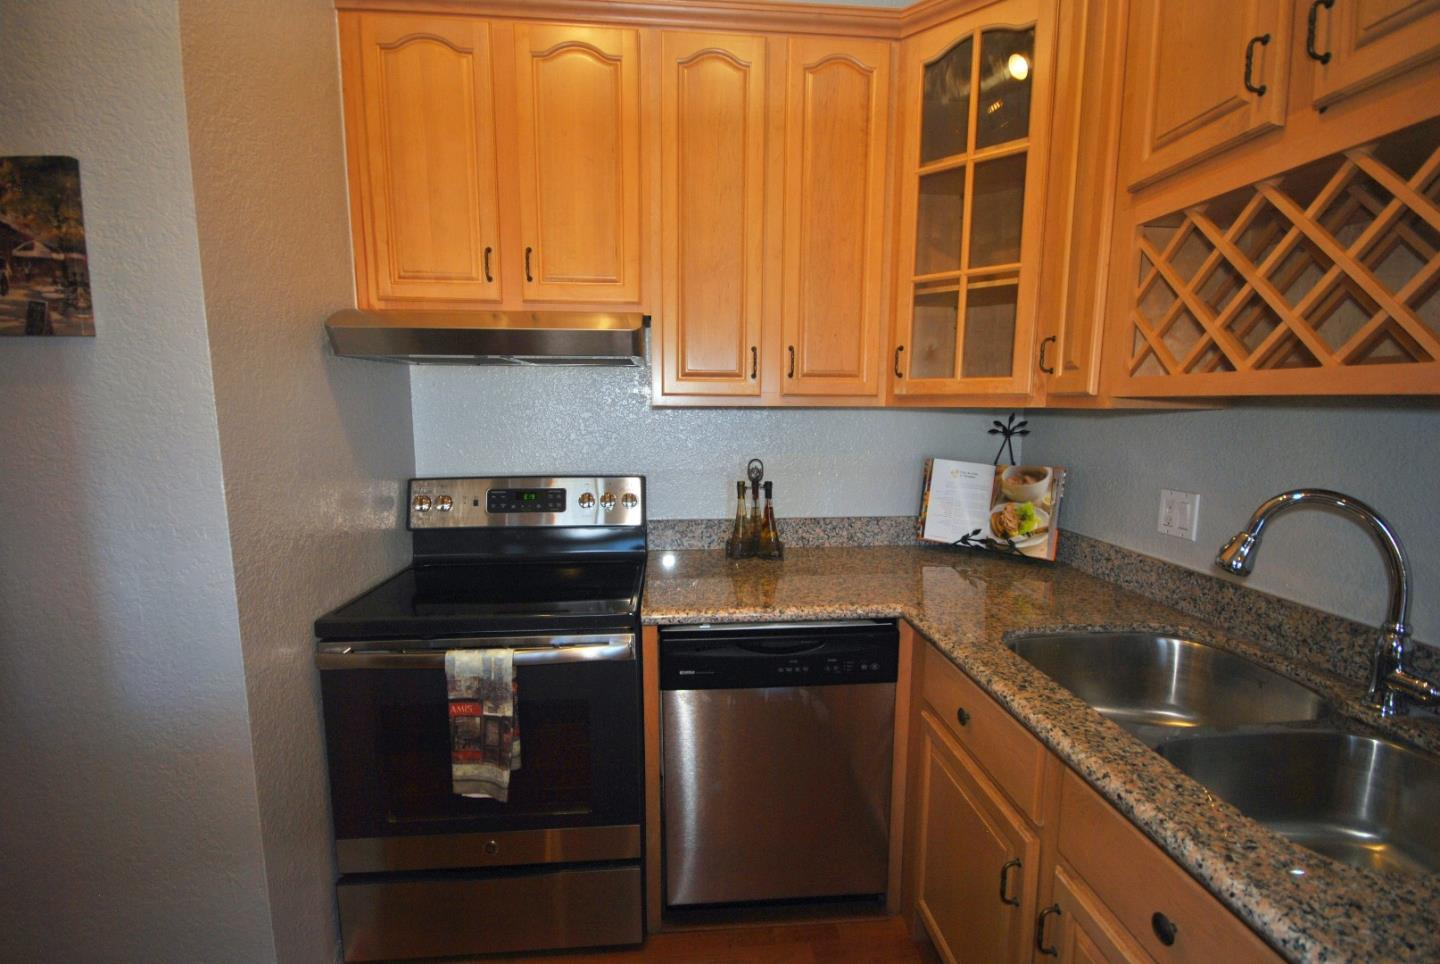 Additional photo for property listing at 3550 Carter Drive  South San Francisco, Kalifornien 94080 Vereinigte Staaten